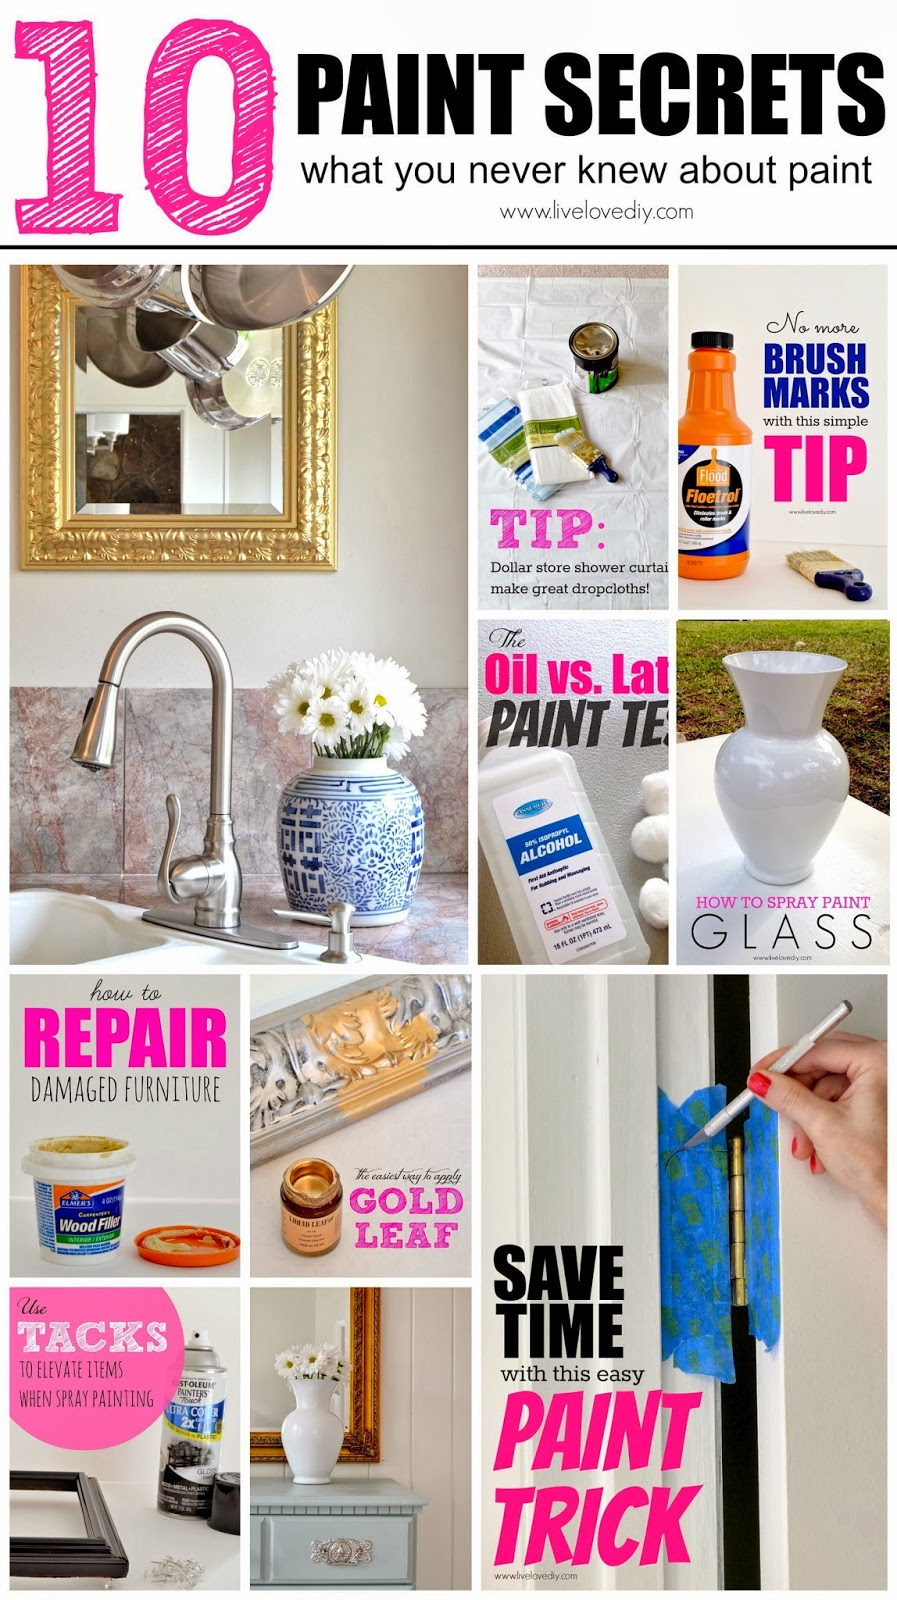 10 Painting Tips   Tricks You Never Knew  Part Three. LiveLoveDIY  10 Painting Tips   Tricks You Never Knew  Part Three